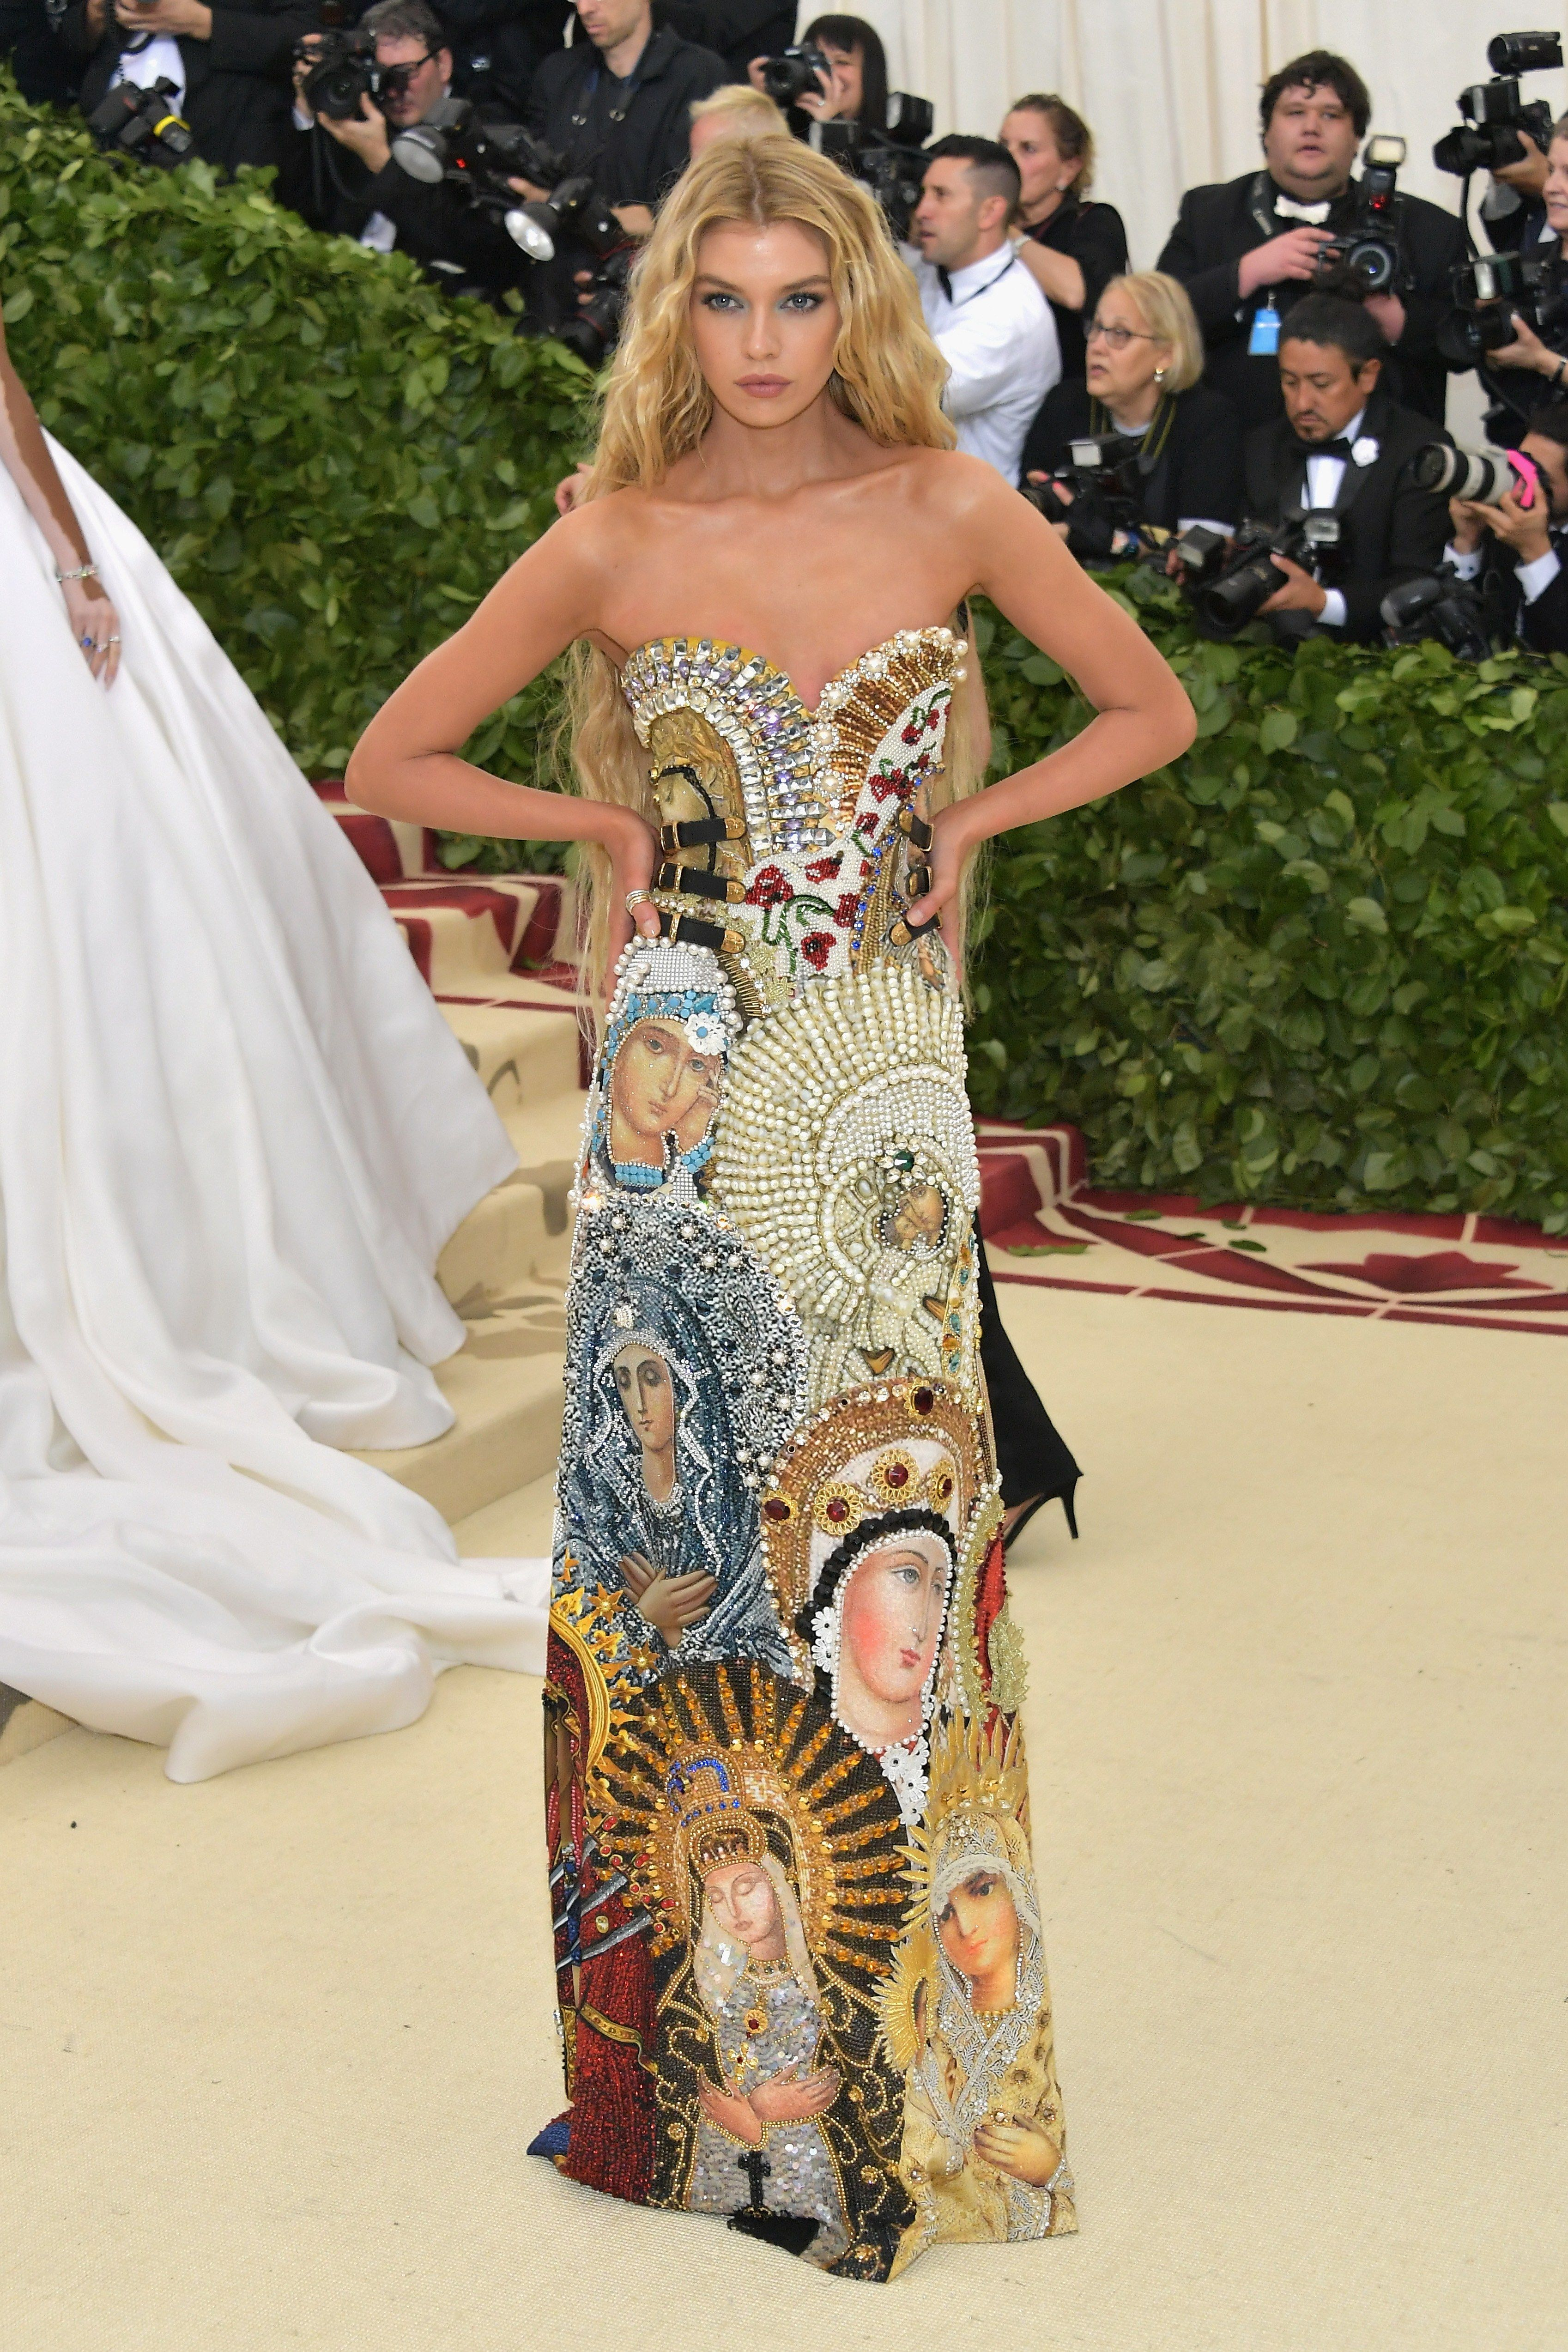 50a6fce5b Stella Maxwell in Moschino - this may be my favorite dress at the met gala  2018! So original and detailed